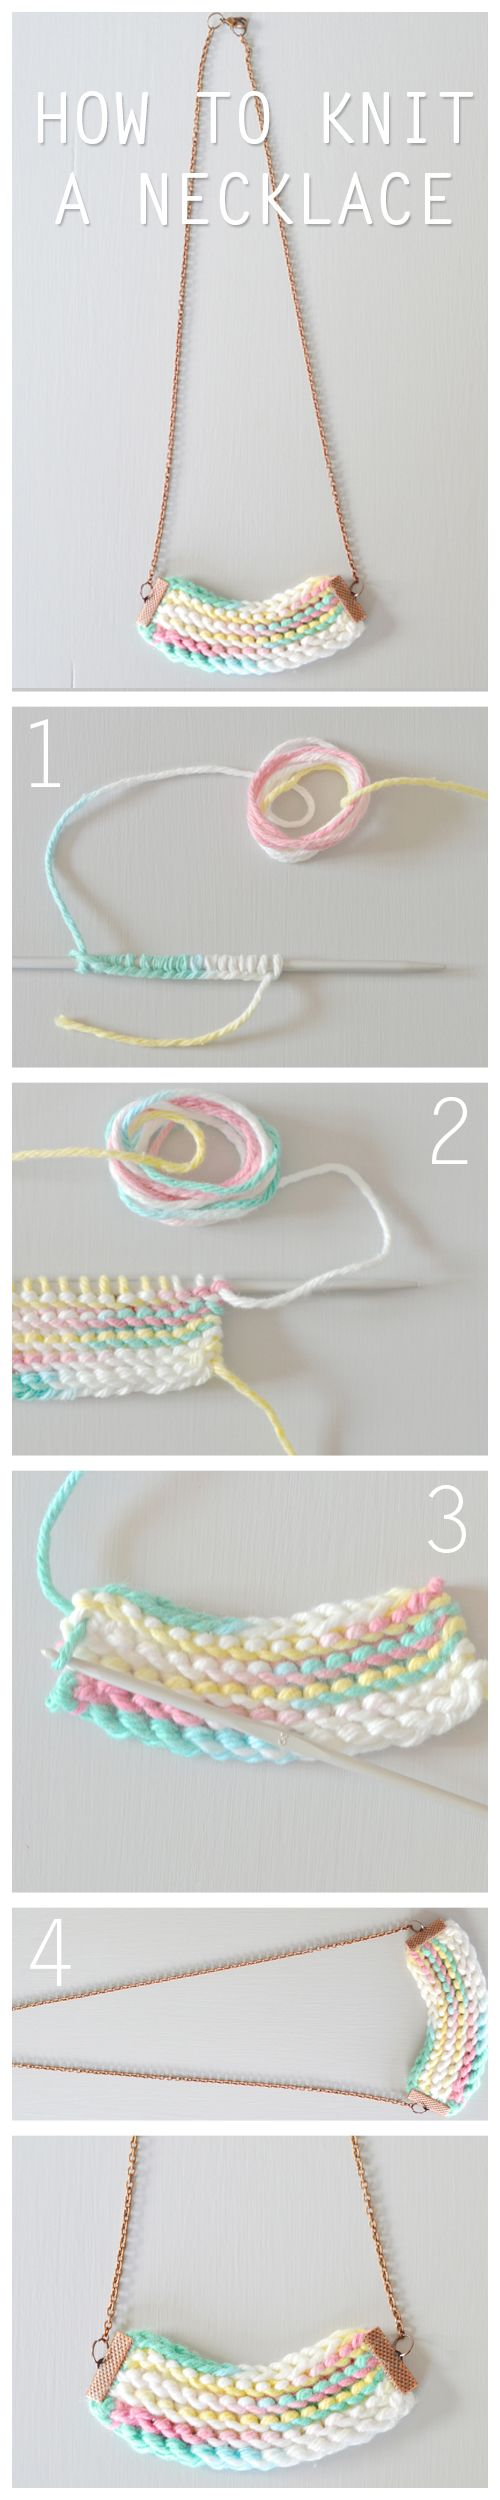 Learning to knit? Try our free knitting pattern to make a unique knitted accessory